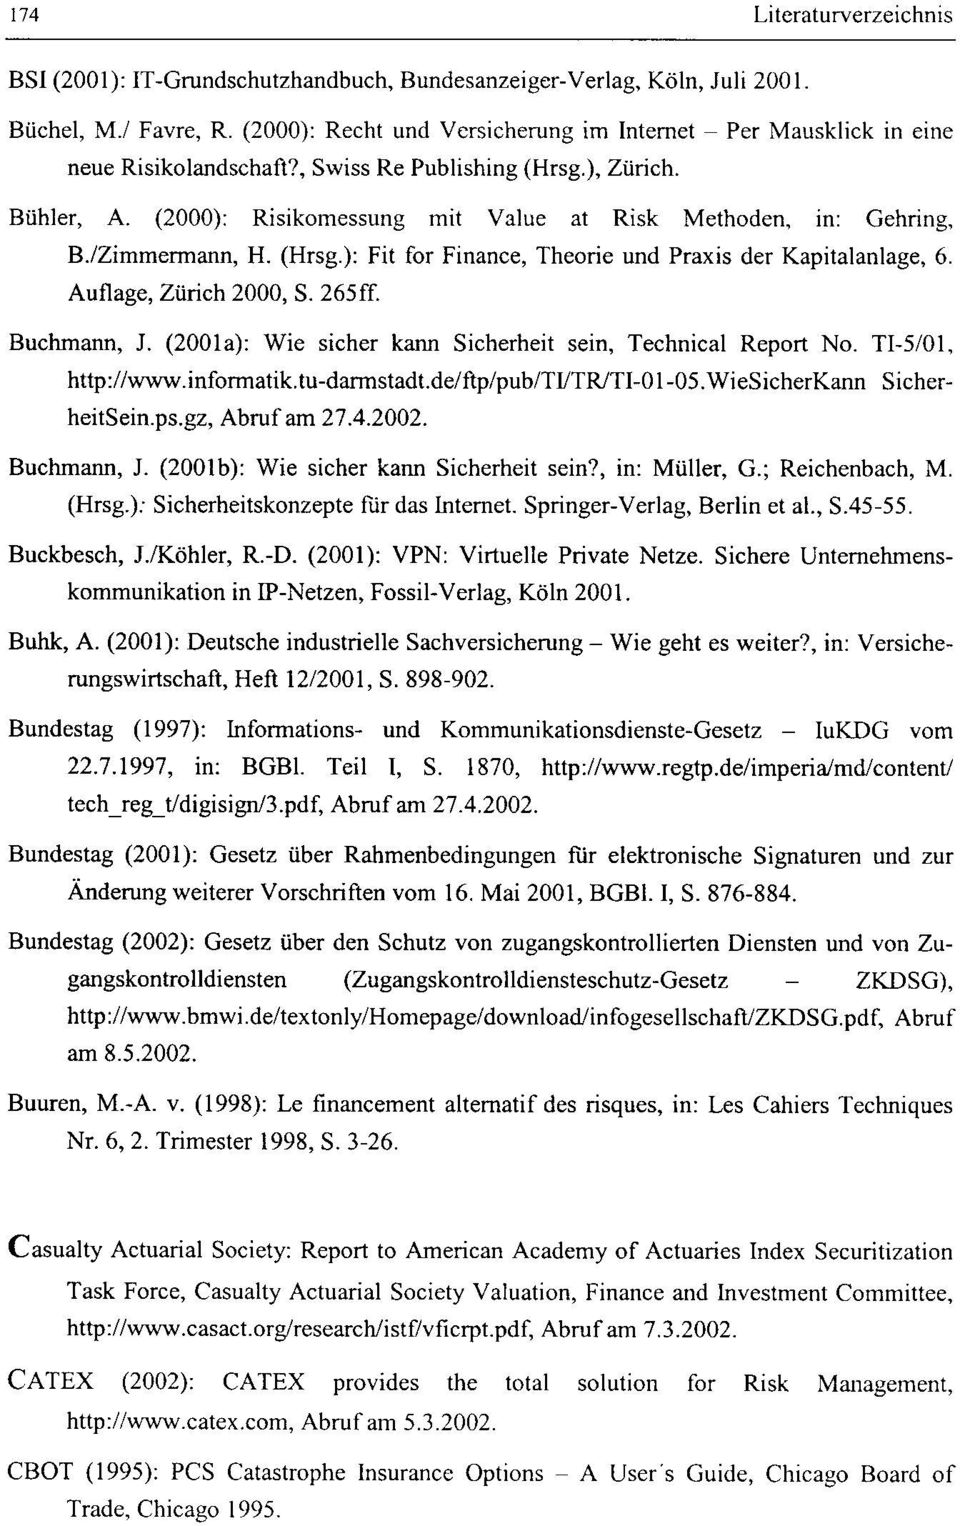 (2000): Risikomessung mit Value at Risk Methoden, m: Gehring, B.lZimmermann, H. (Hrsg.): Fit for Finance, Theorie und Praxis der Kapitalanlage, 6. Auflage, Zürich 2000, S. 265ff. Buchmann, J.